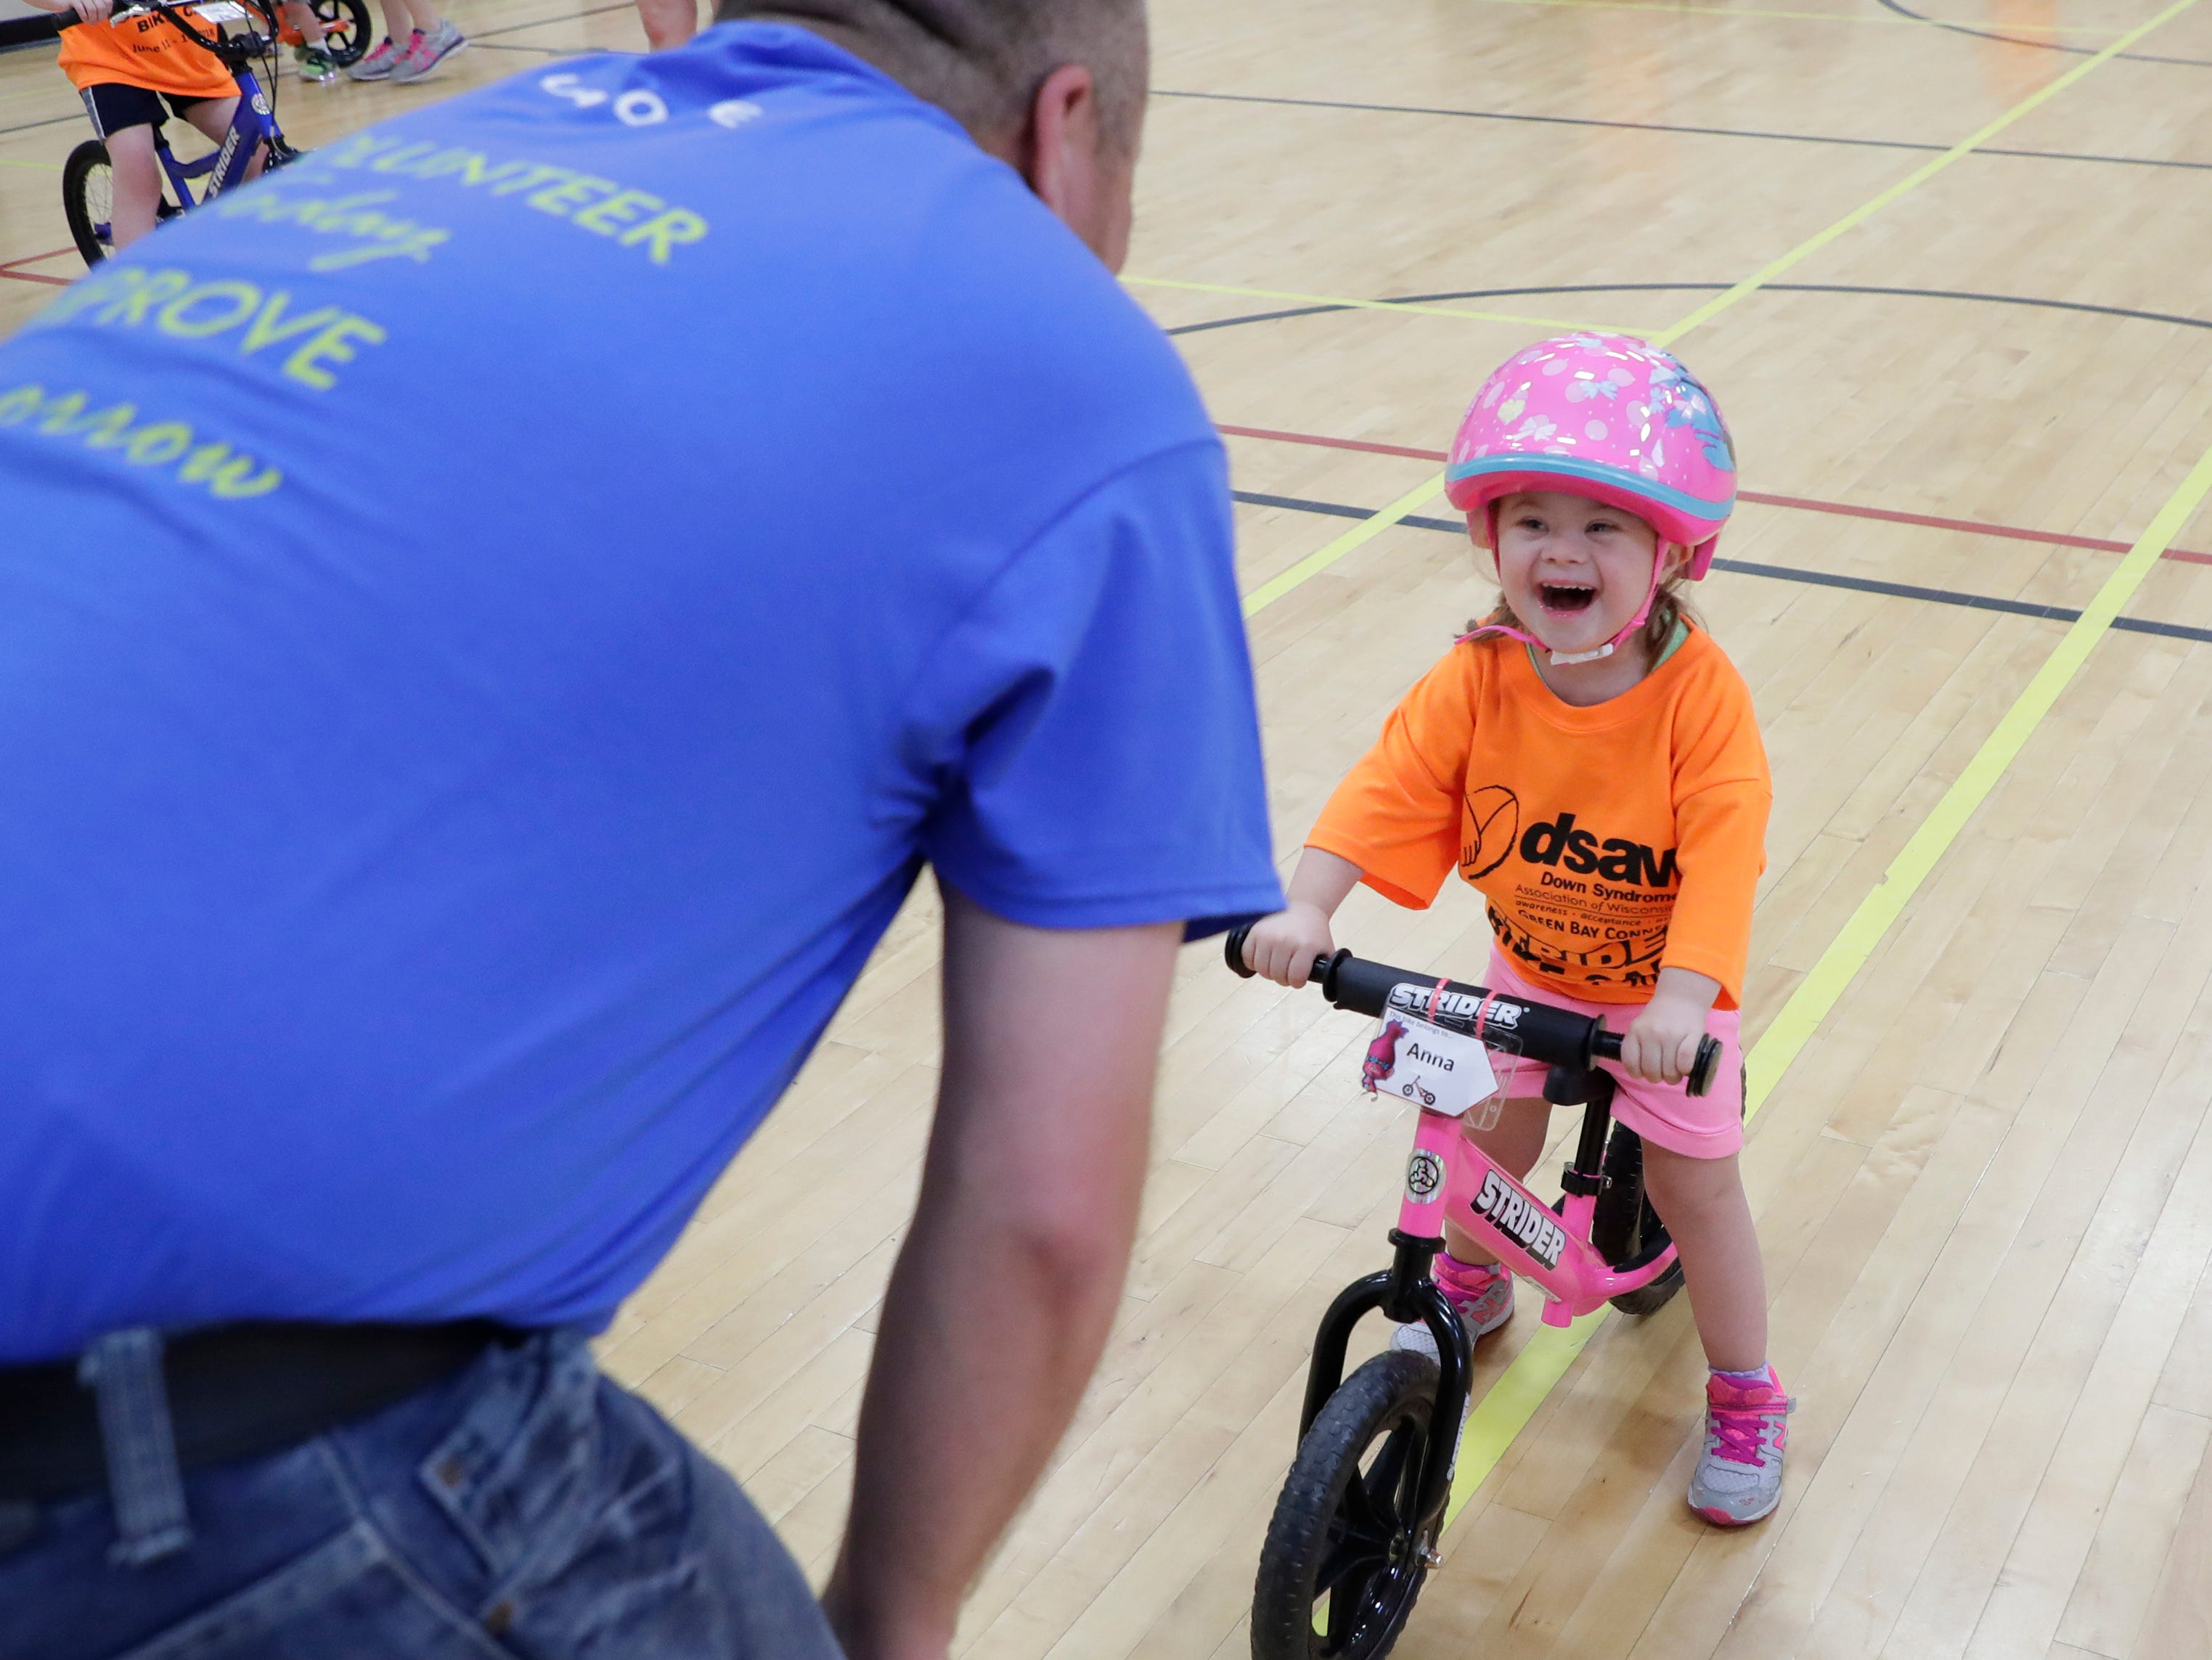 Anna smiles at volunteer Clint Smith during the Down Syndrome Association of Wisconsin Strider Bike training at the East Side YMCA Monday, June 11, 2018 in Bellevue, Wis.